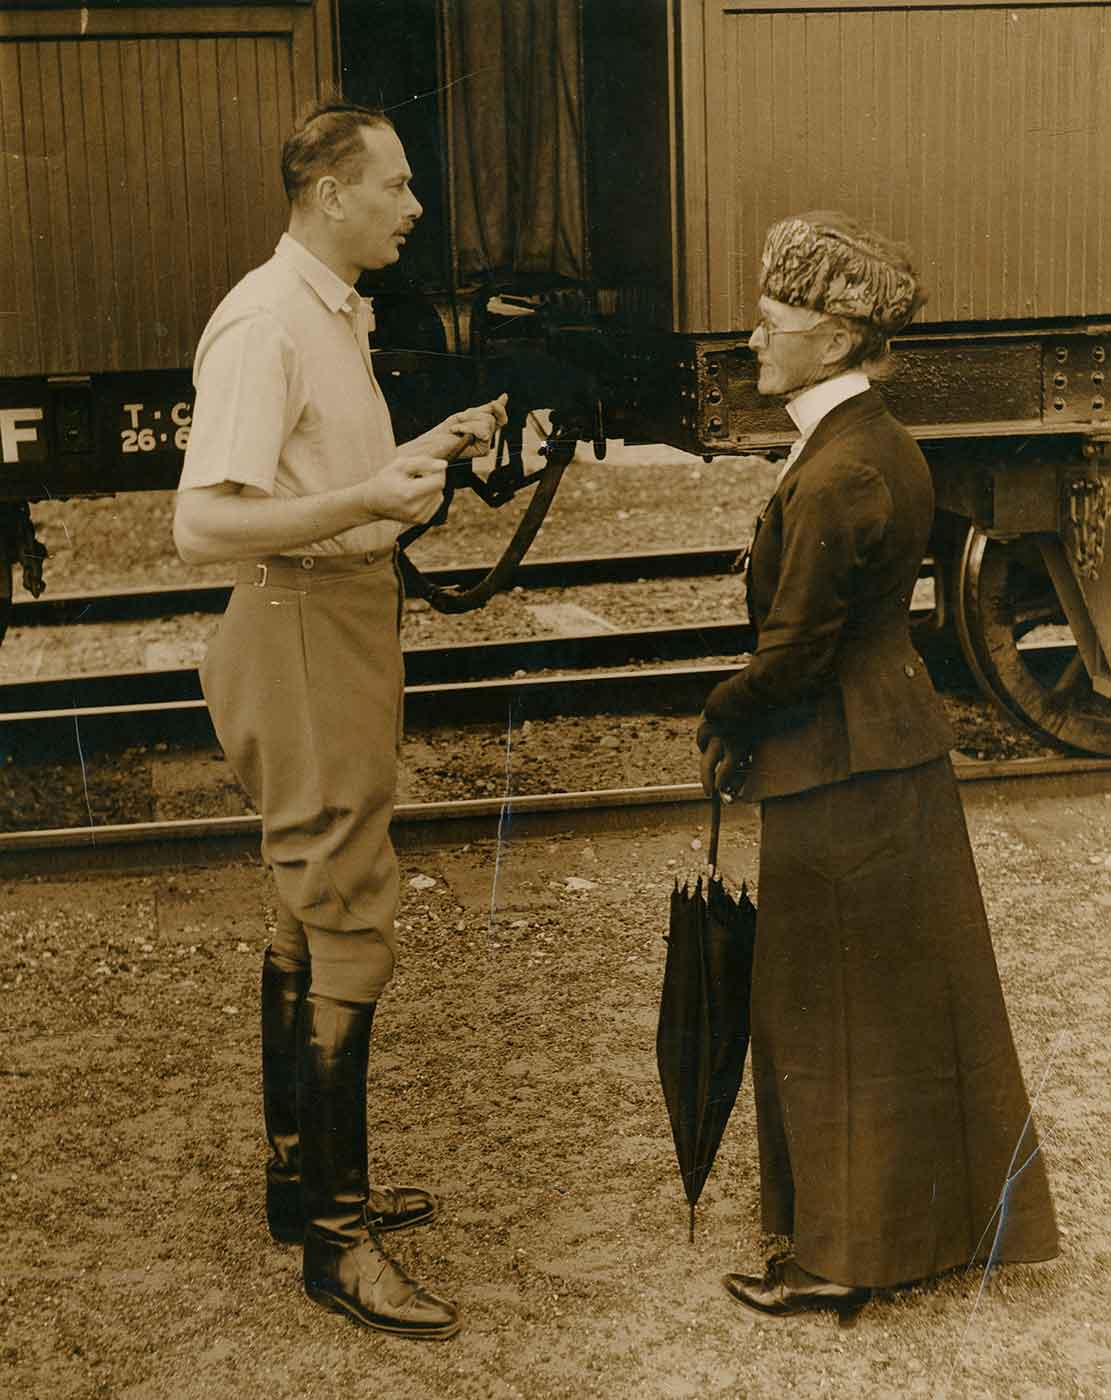 Black and white photo of a man in conversation with an elderly woman, standing next to a stationary train. - click to view larger image